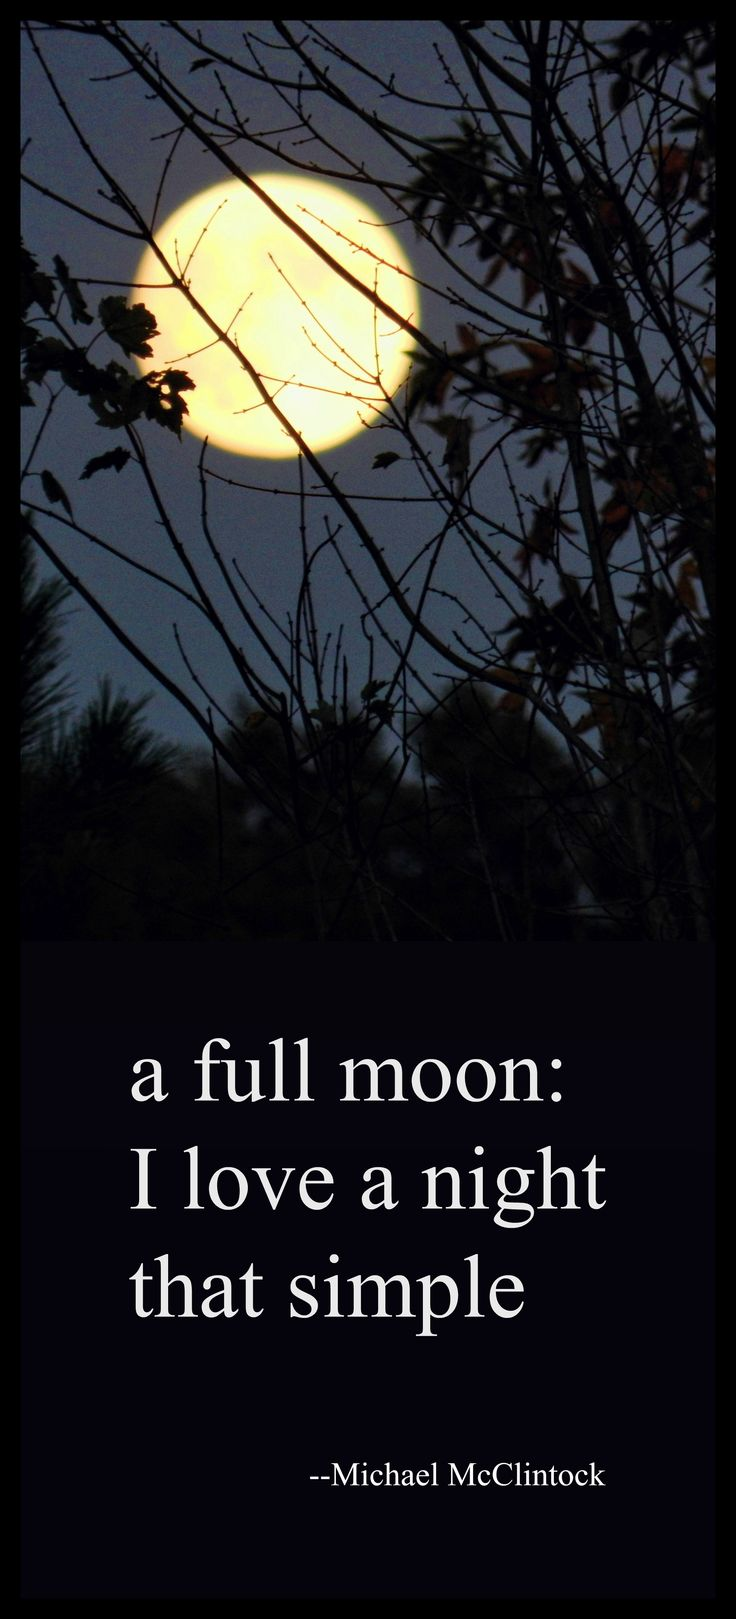 A full moon....I love a night that simple. -- by Michael McClintock <3